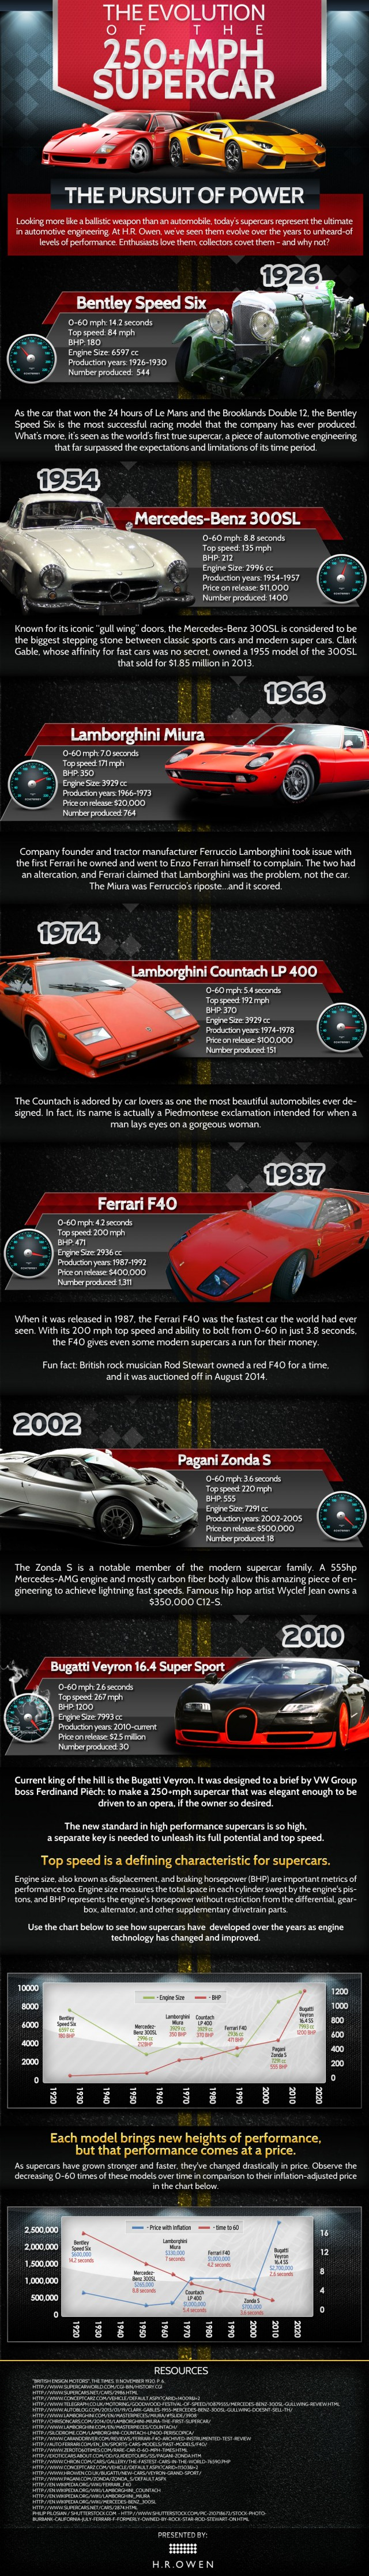 The Evolution of the 250+ MPH Supercar